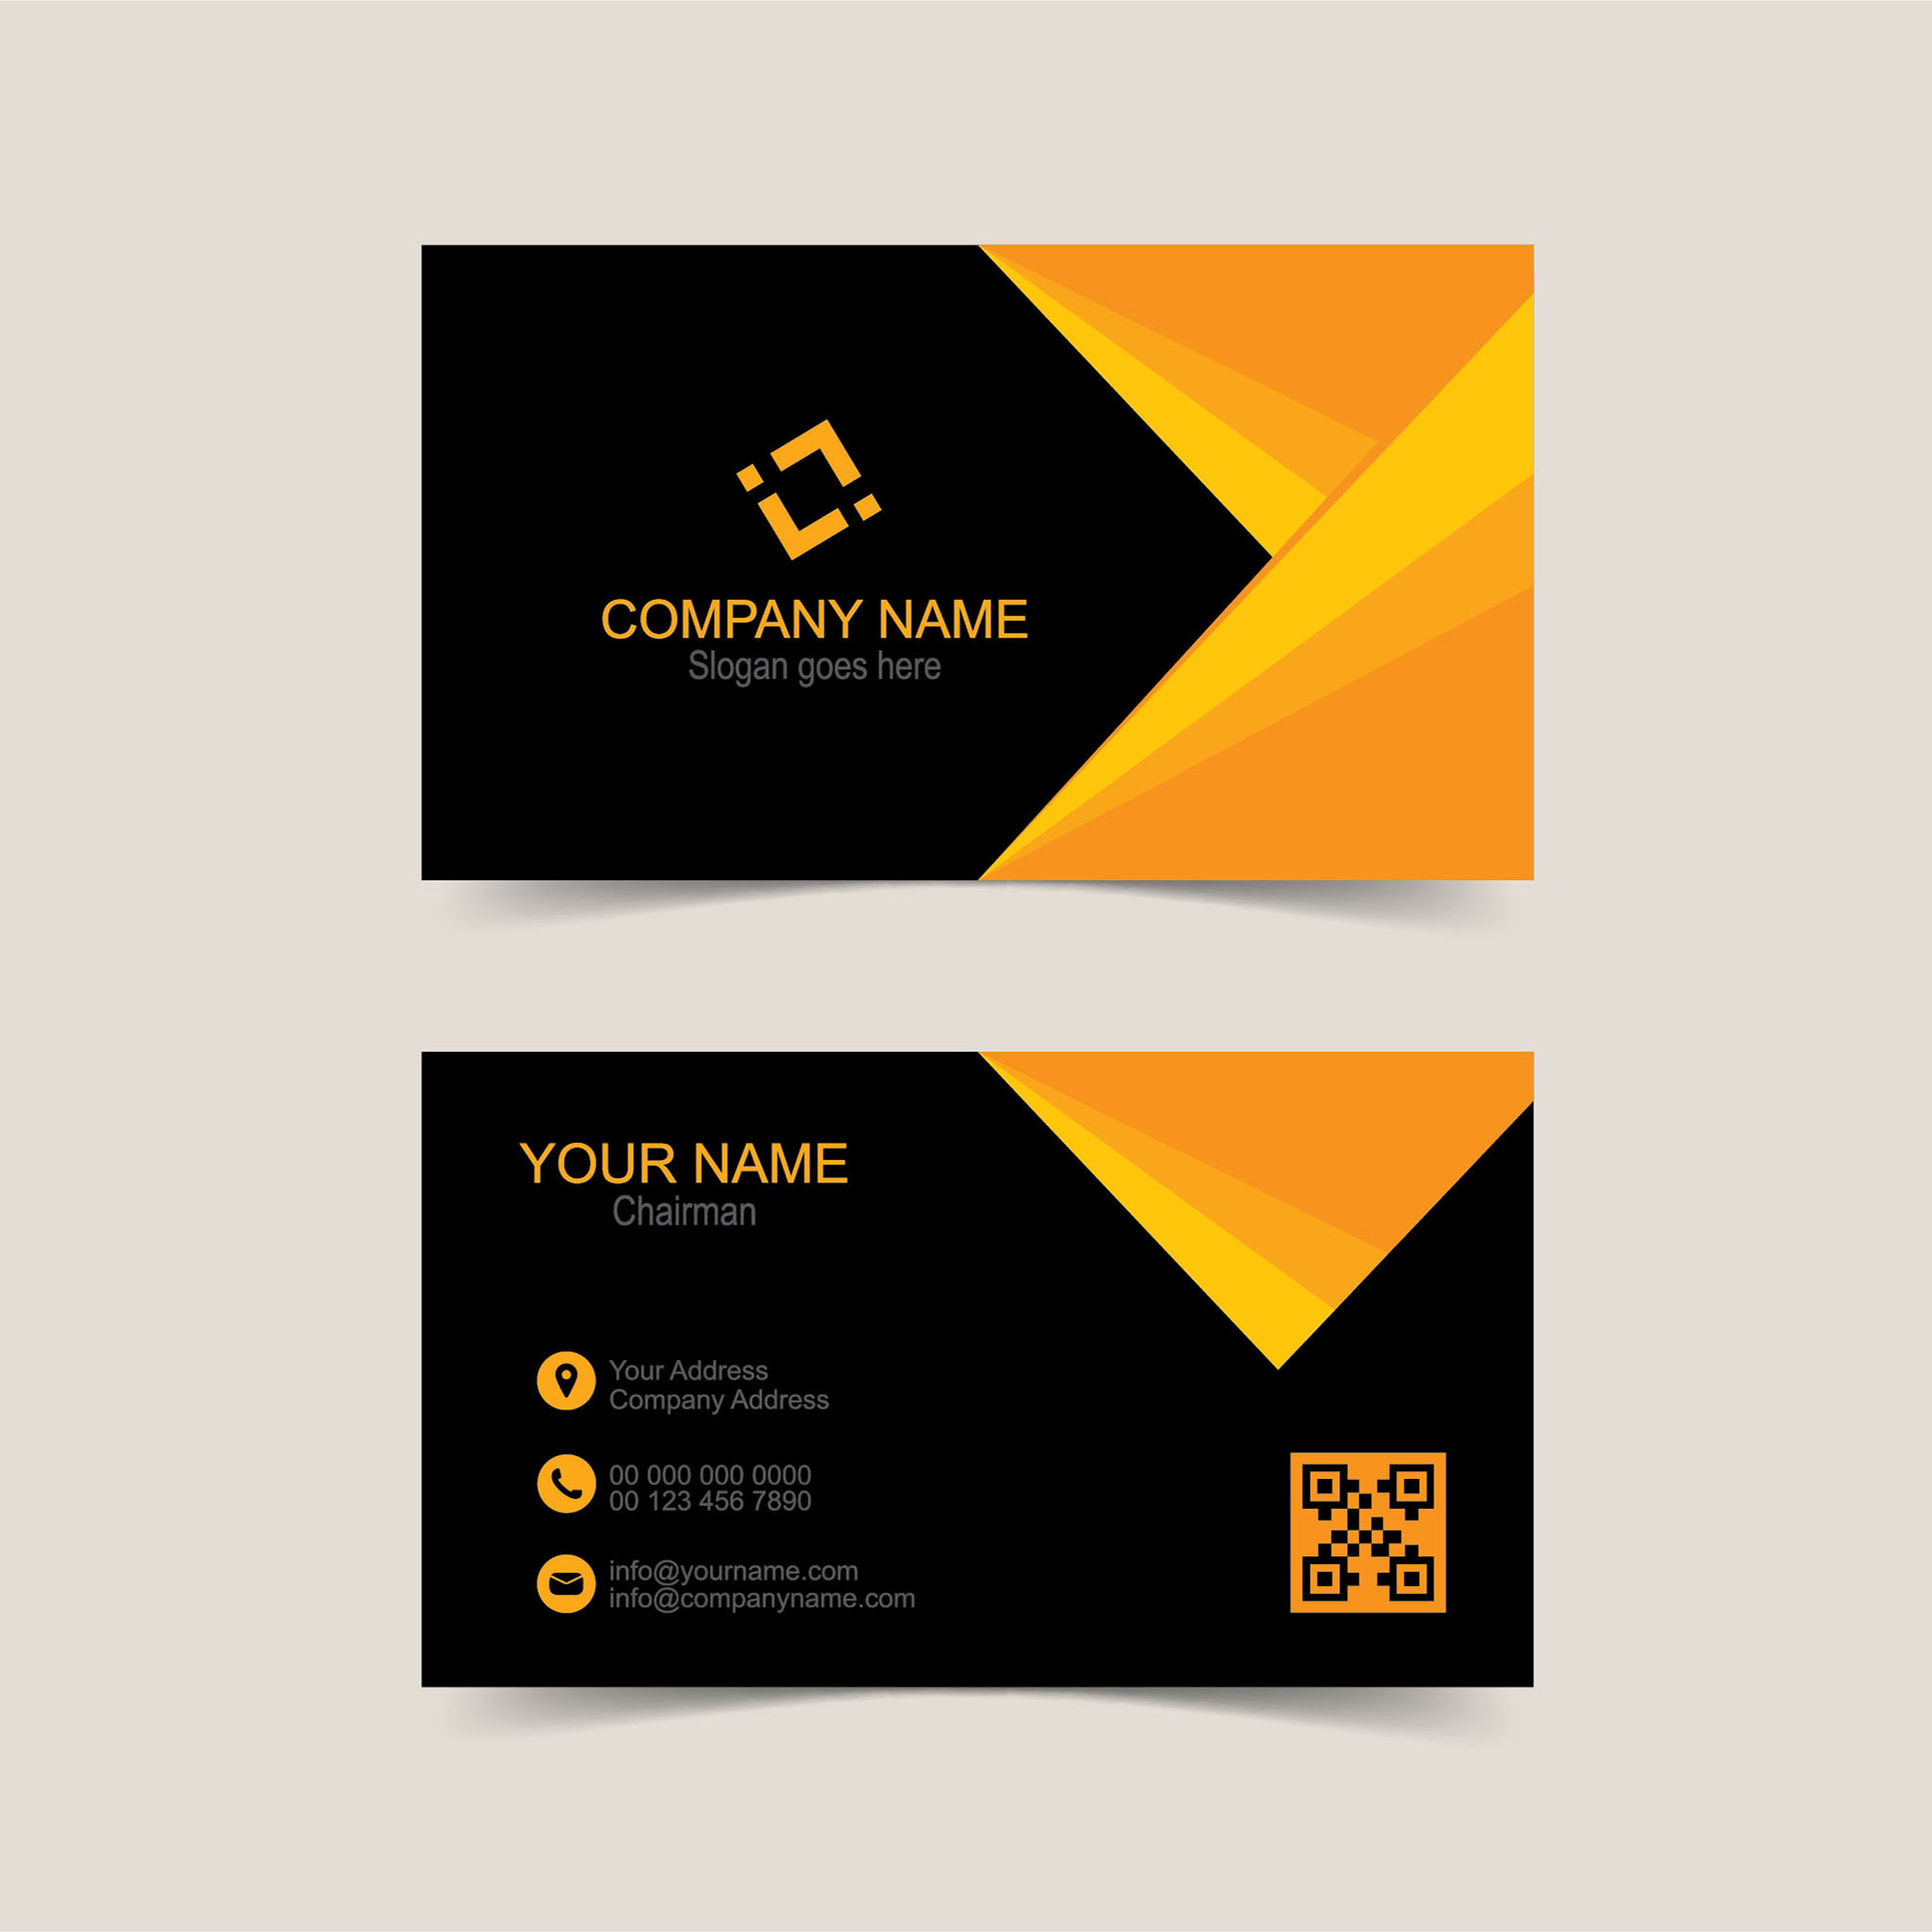 Business card template vector free download wisxi business card business cards business card design business card template design templates reheart Choice Image